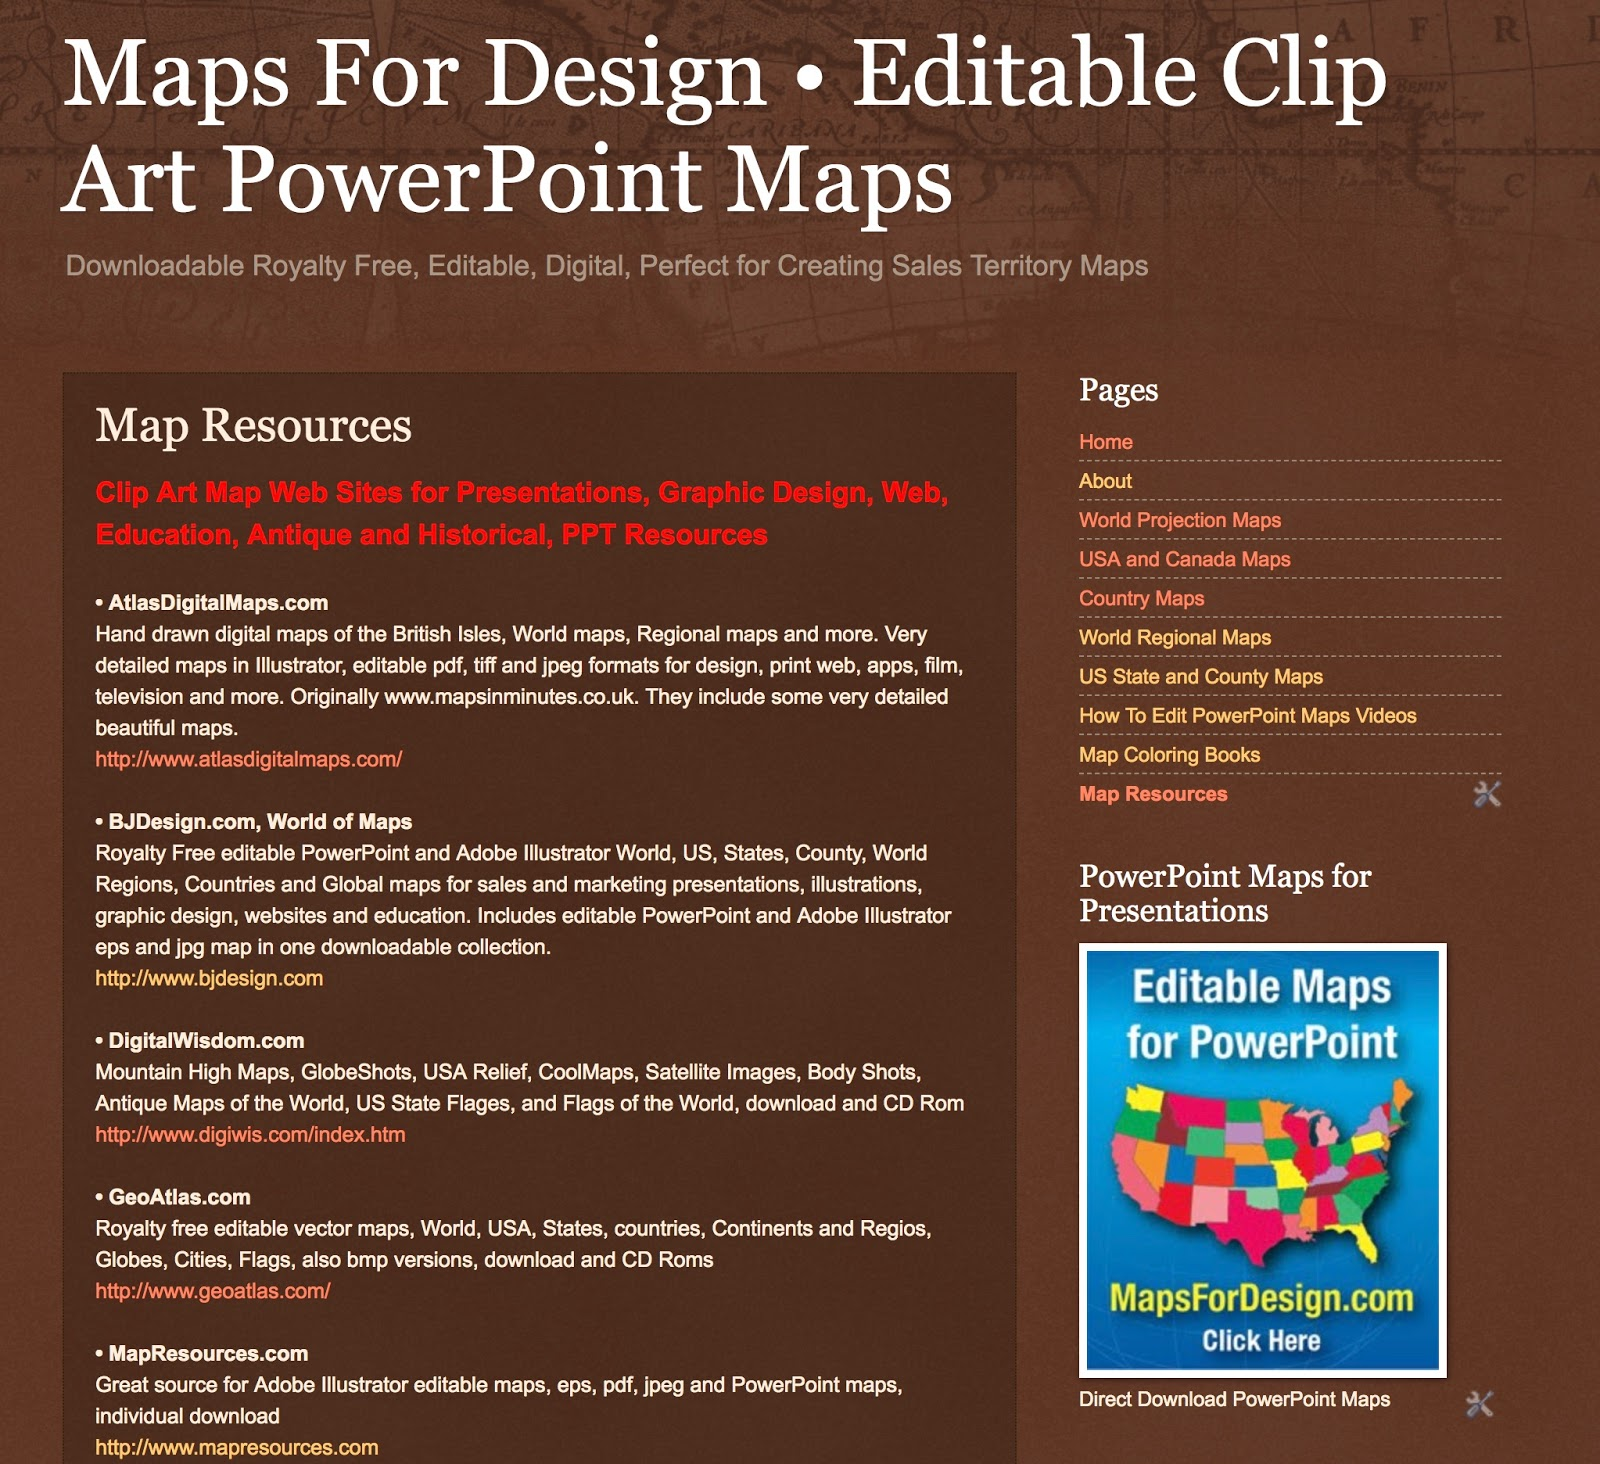 new map resources page for mapsfordesign blog